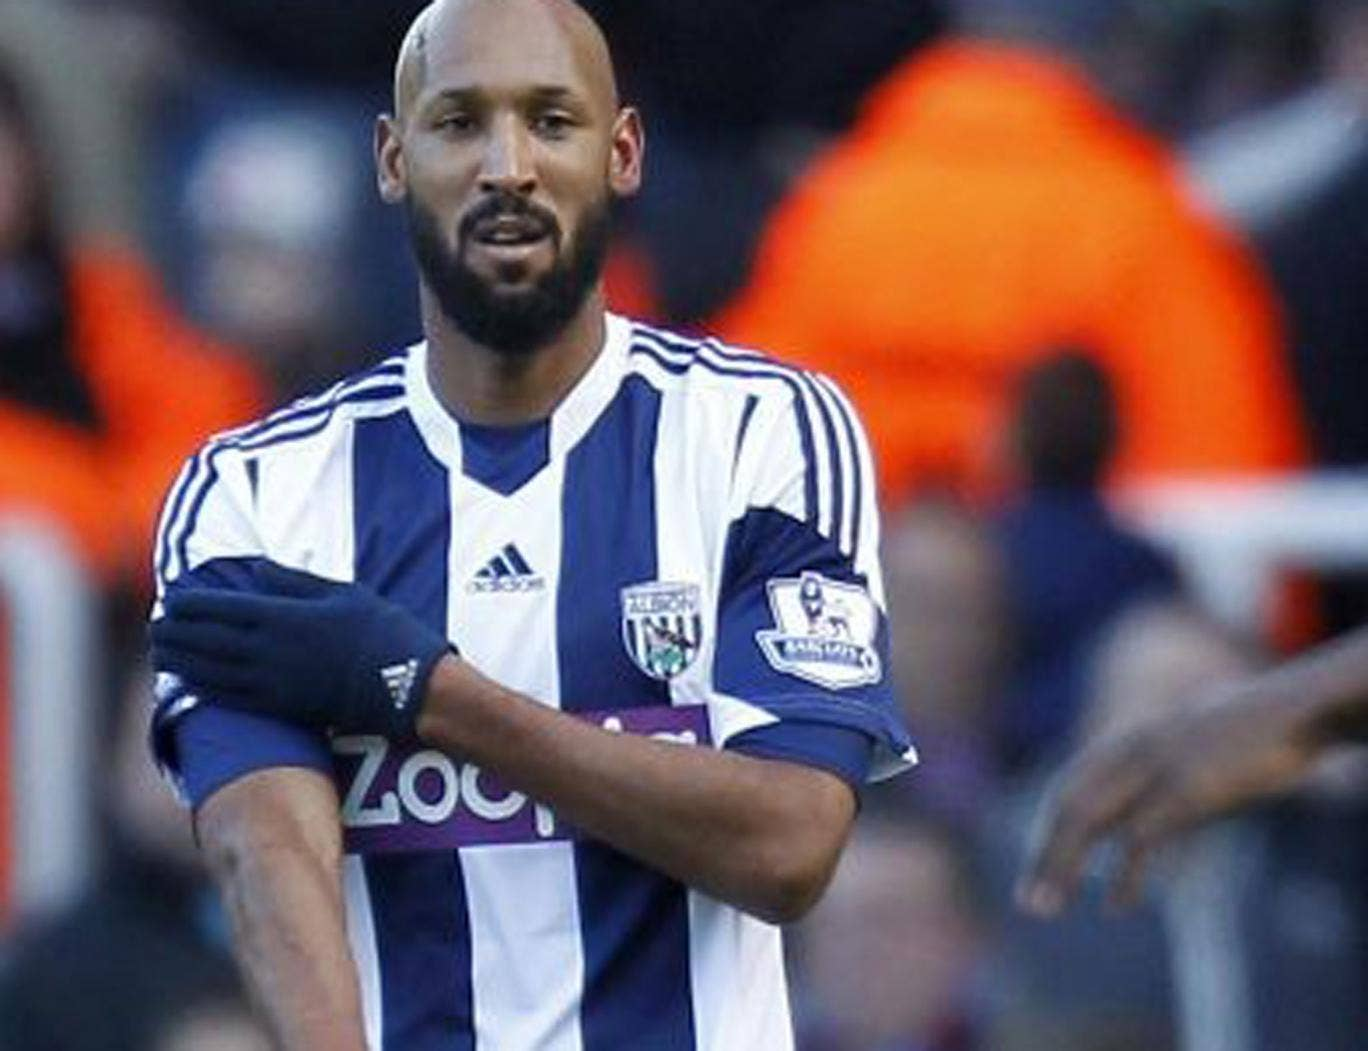 West Brom striker Nicolas Anelka makes an alleged anti-Semitic gesture when celebrating his first goal against West Ham